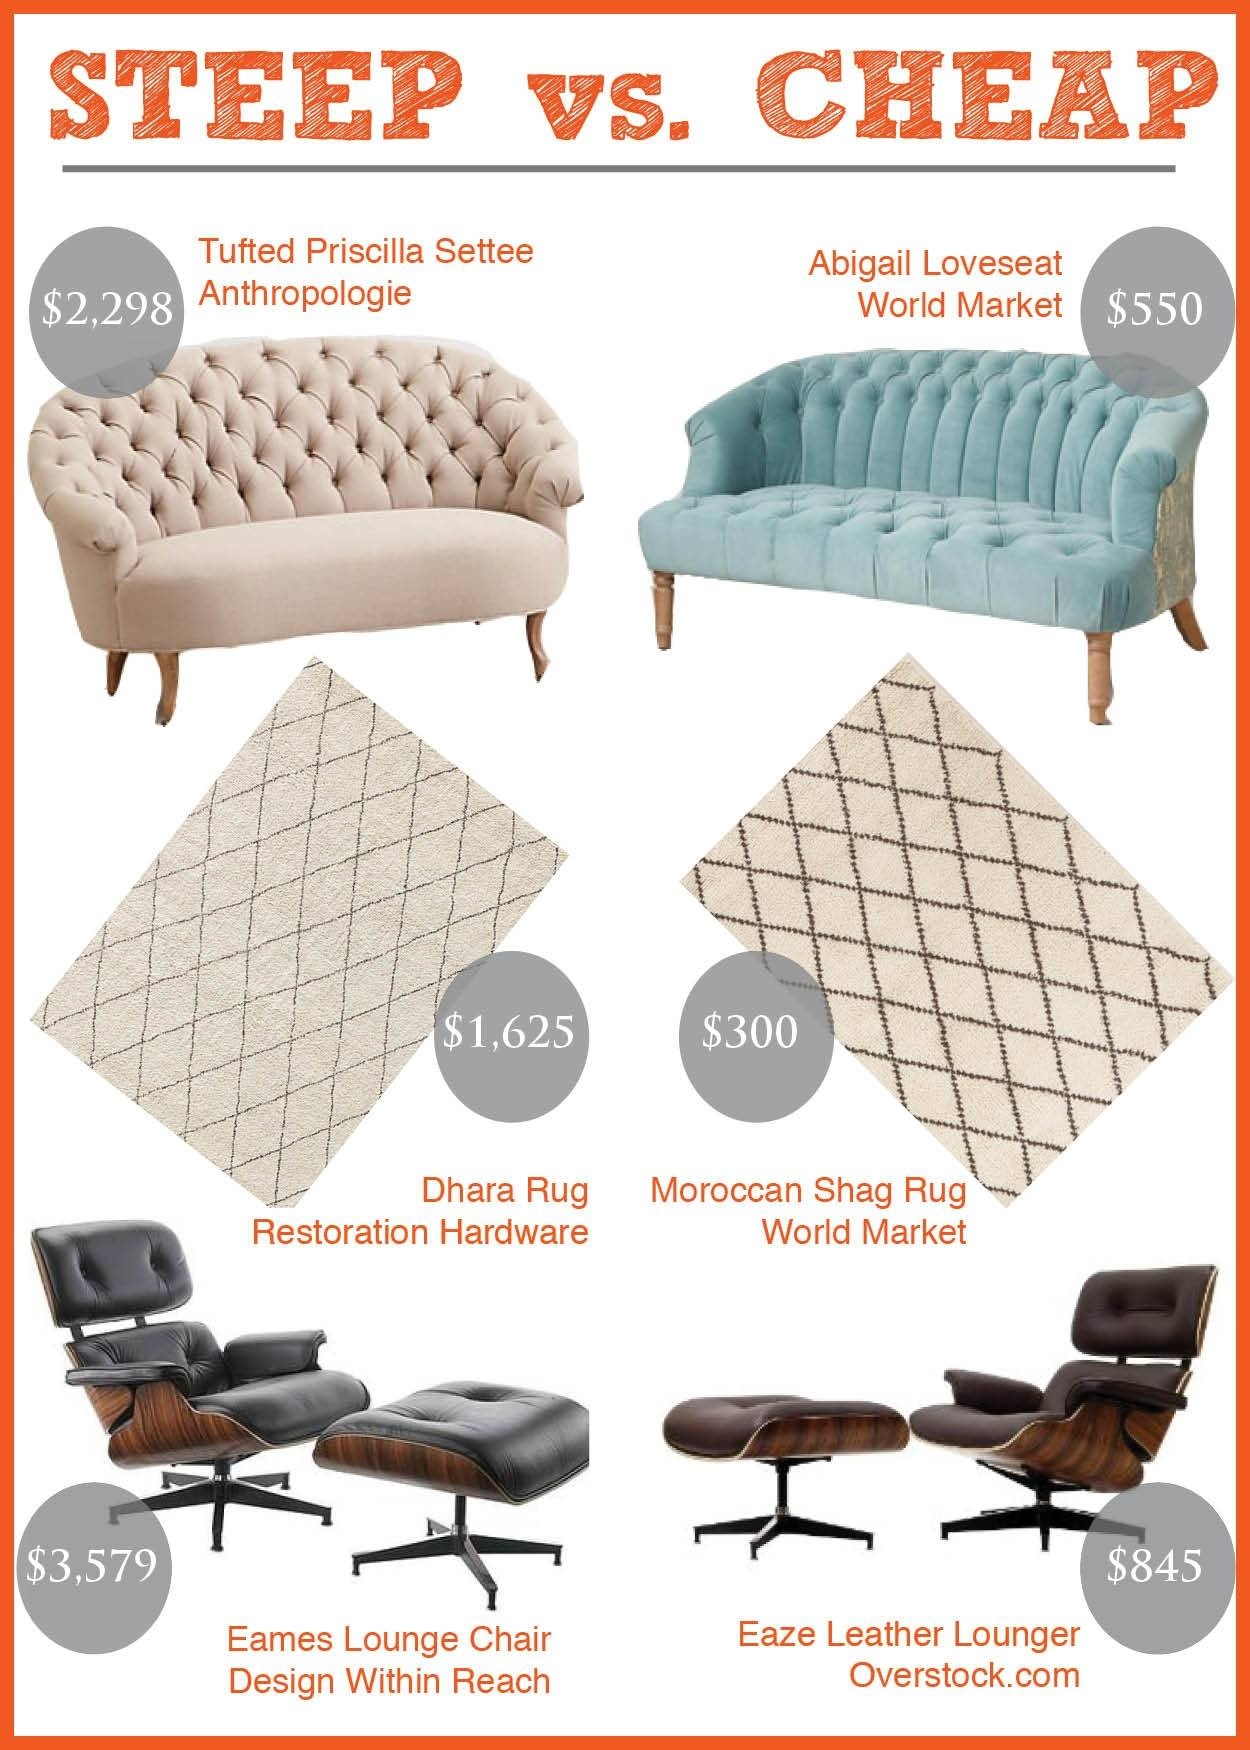 12 Best Collection Of Affordable Tufted Sofa Inside Cheap Tufted Sofas  (Image 1 Of 30